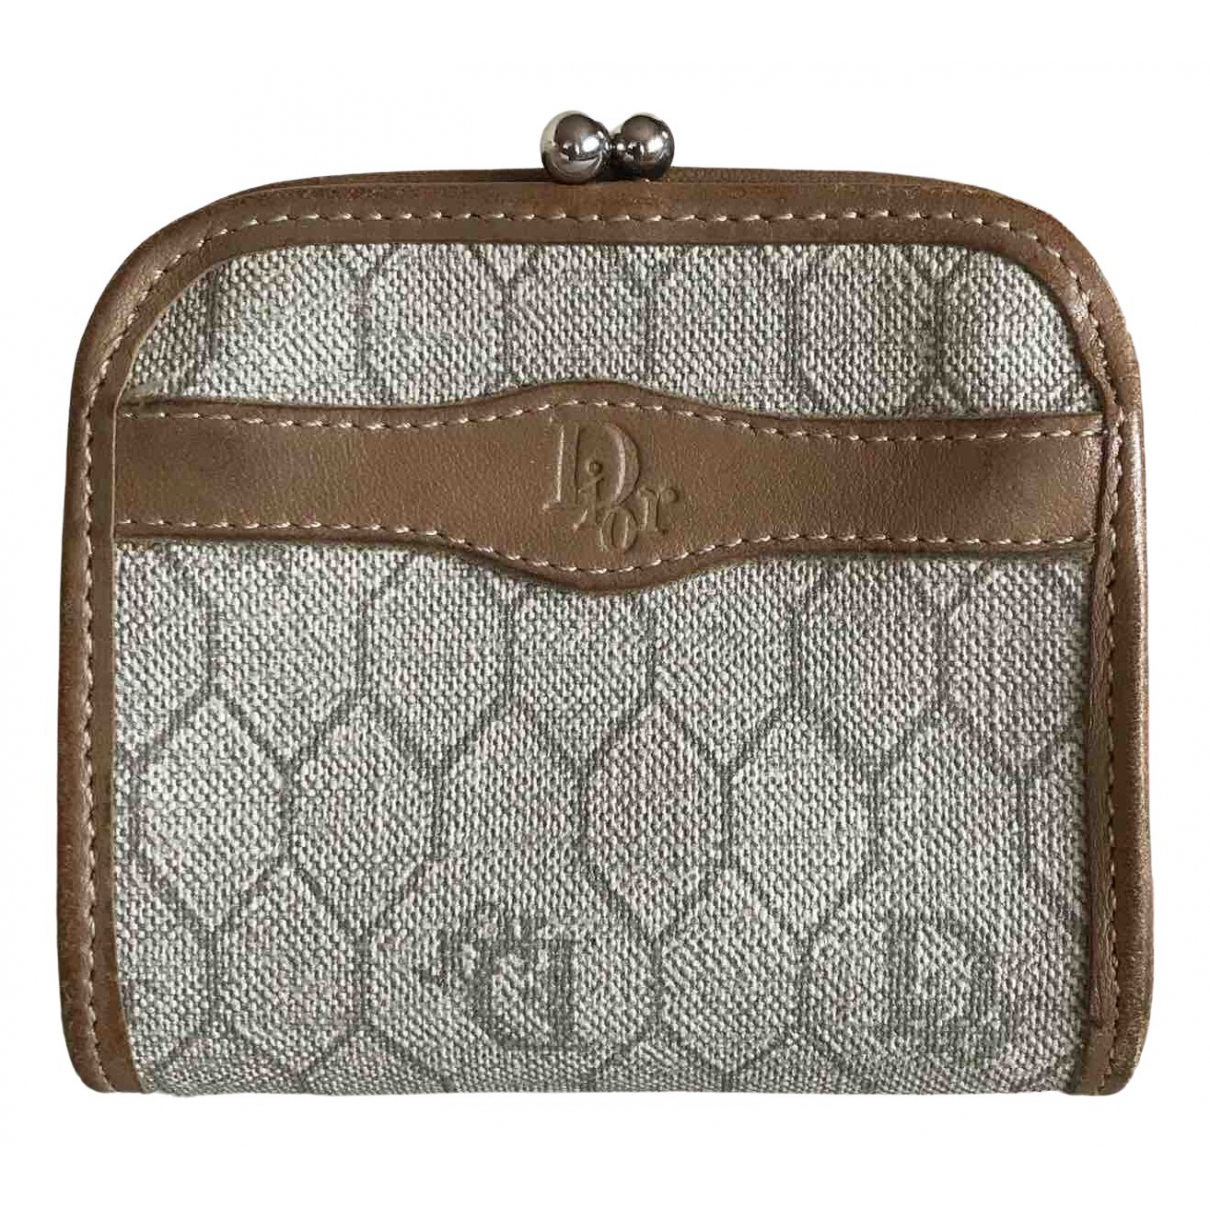 Dior N Cloth Purses, wallet & cases for Women N